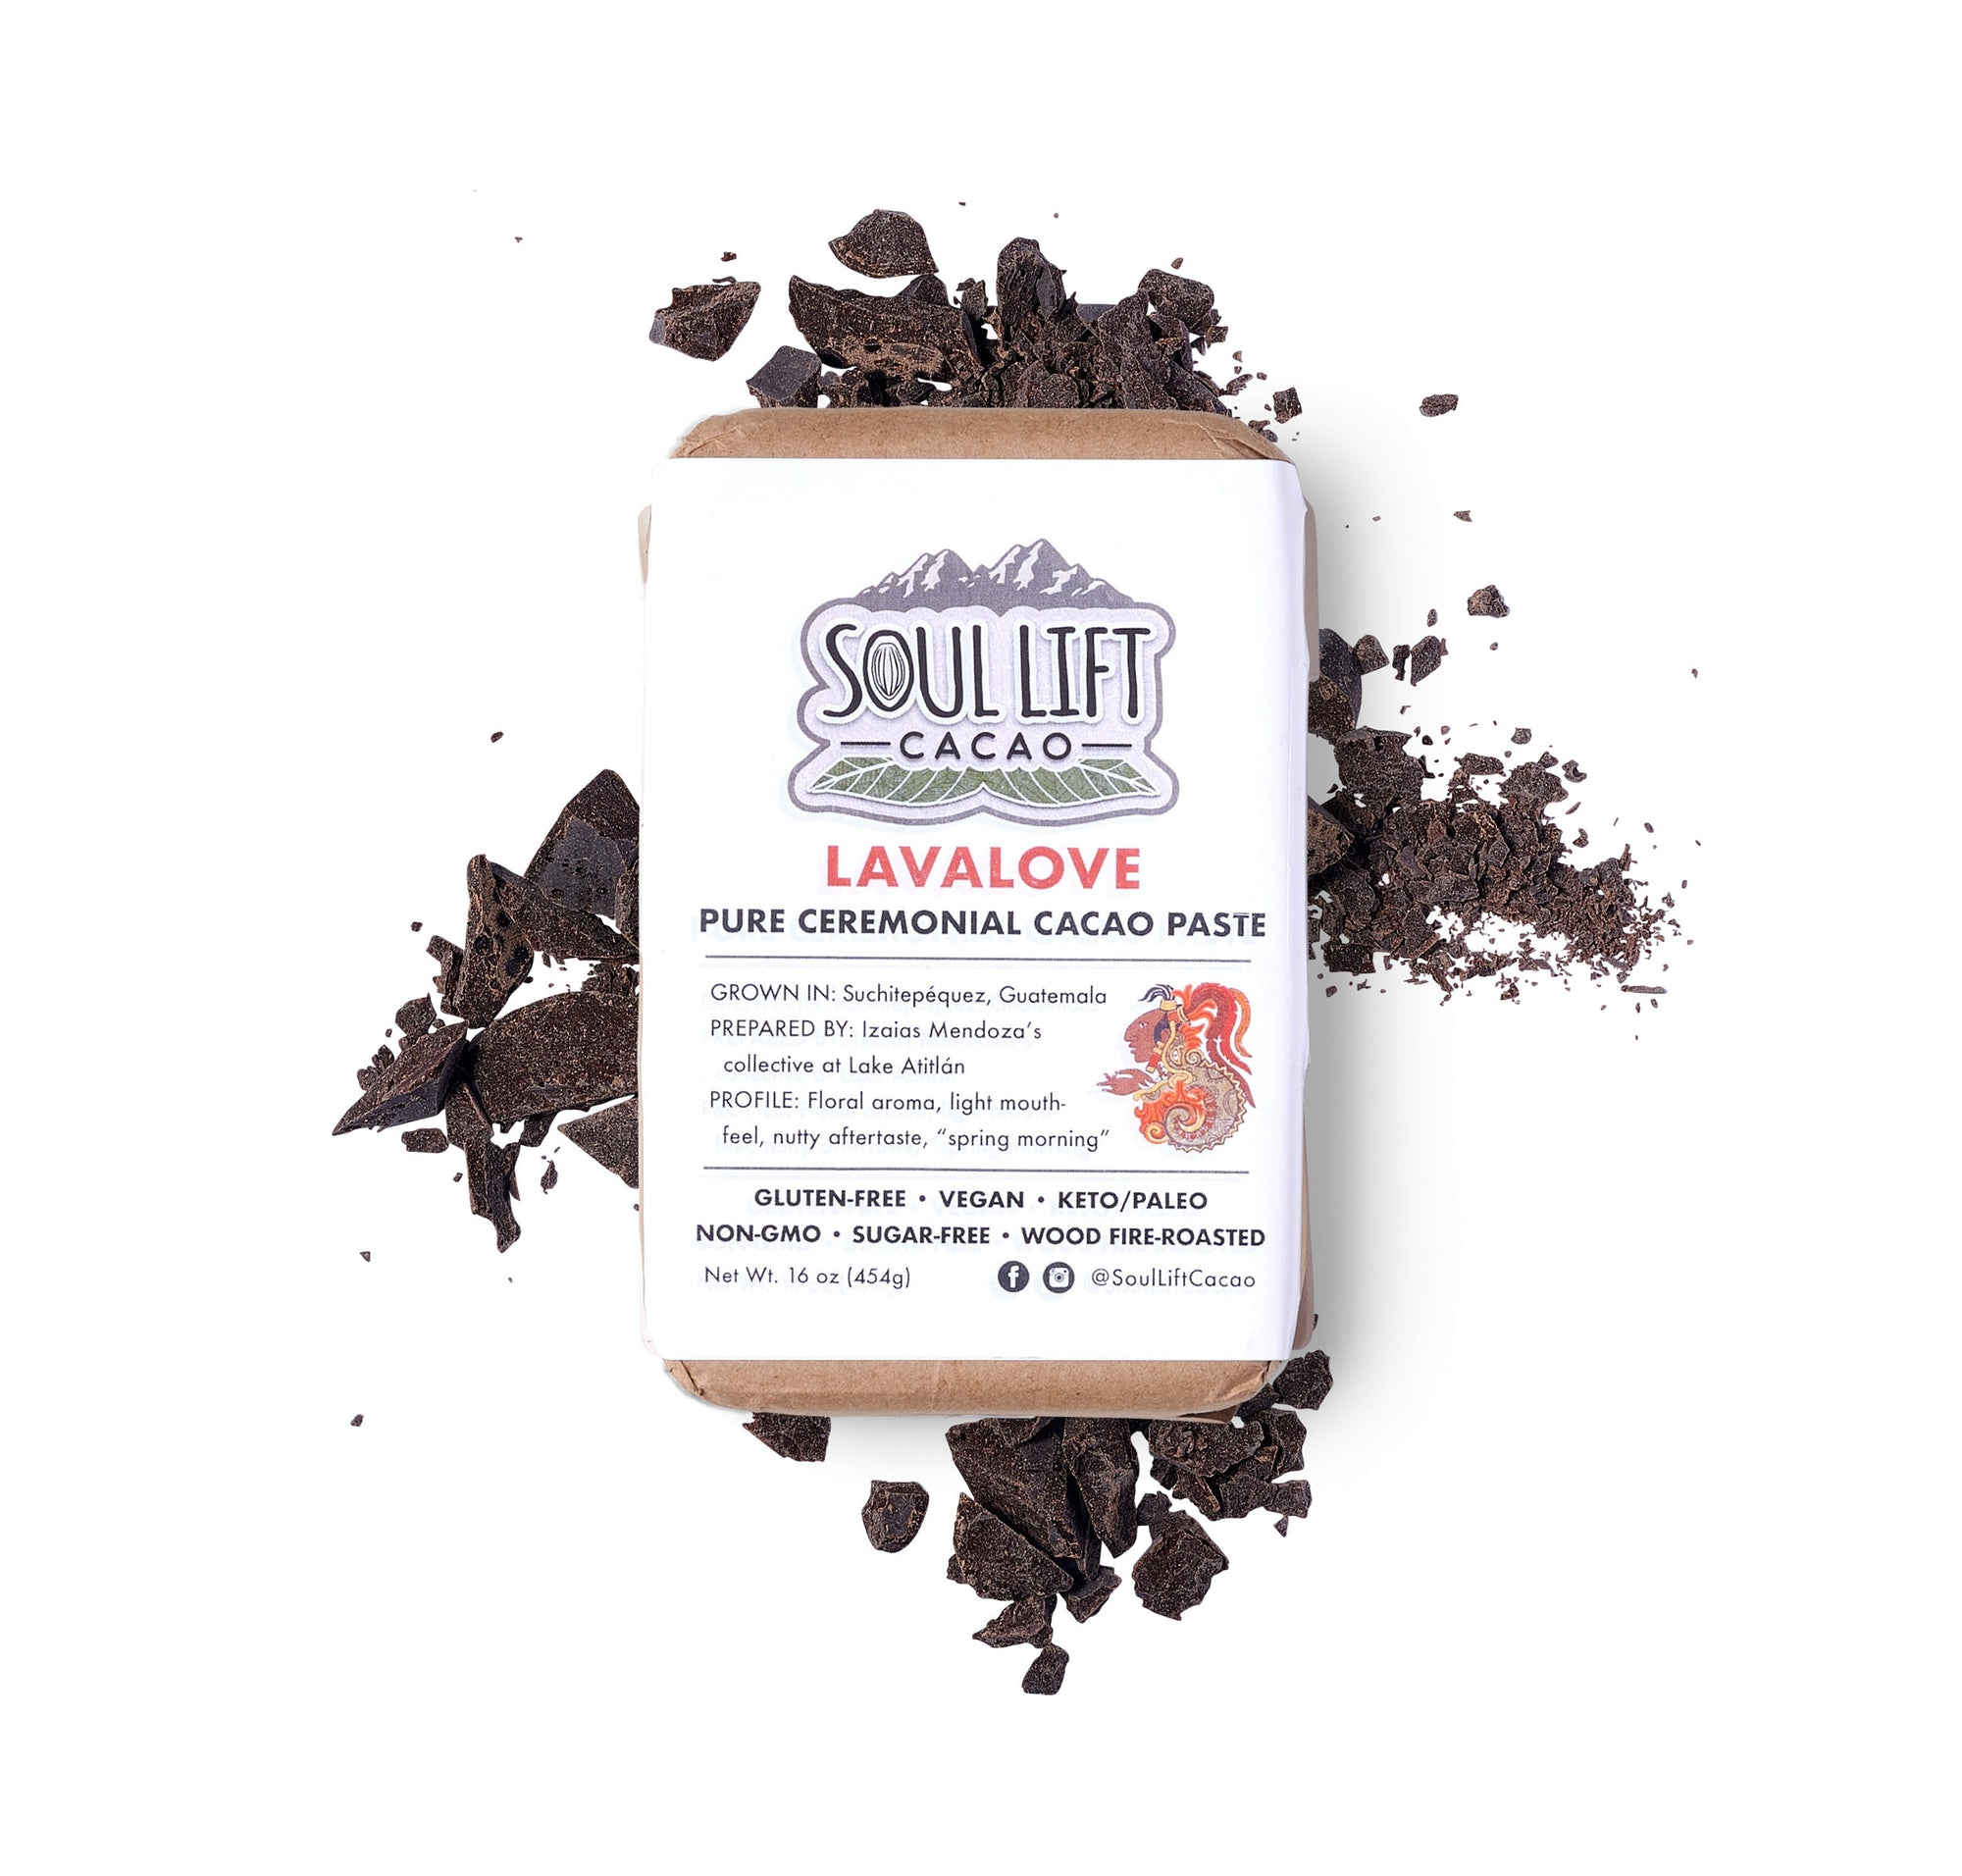 Lavalove 100% Pure Ceremonial Cacao Paste - 1lb Block